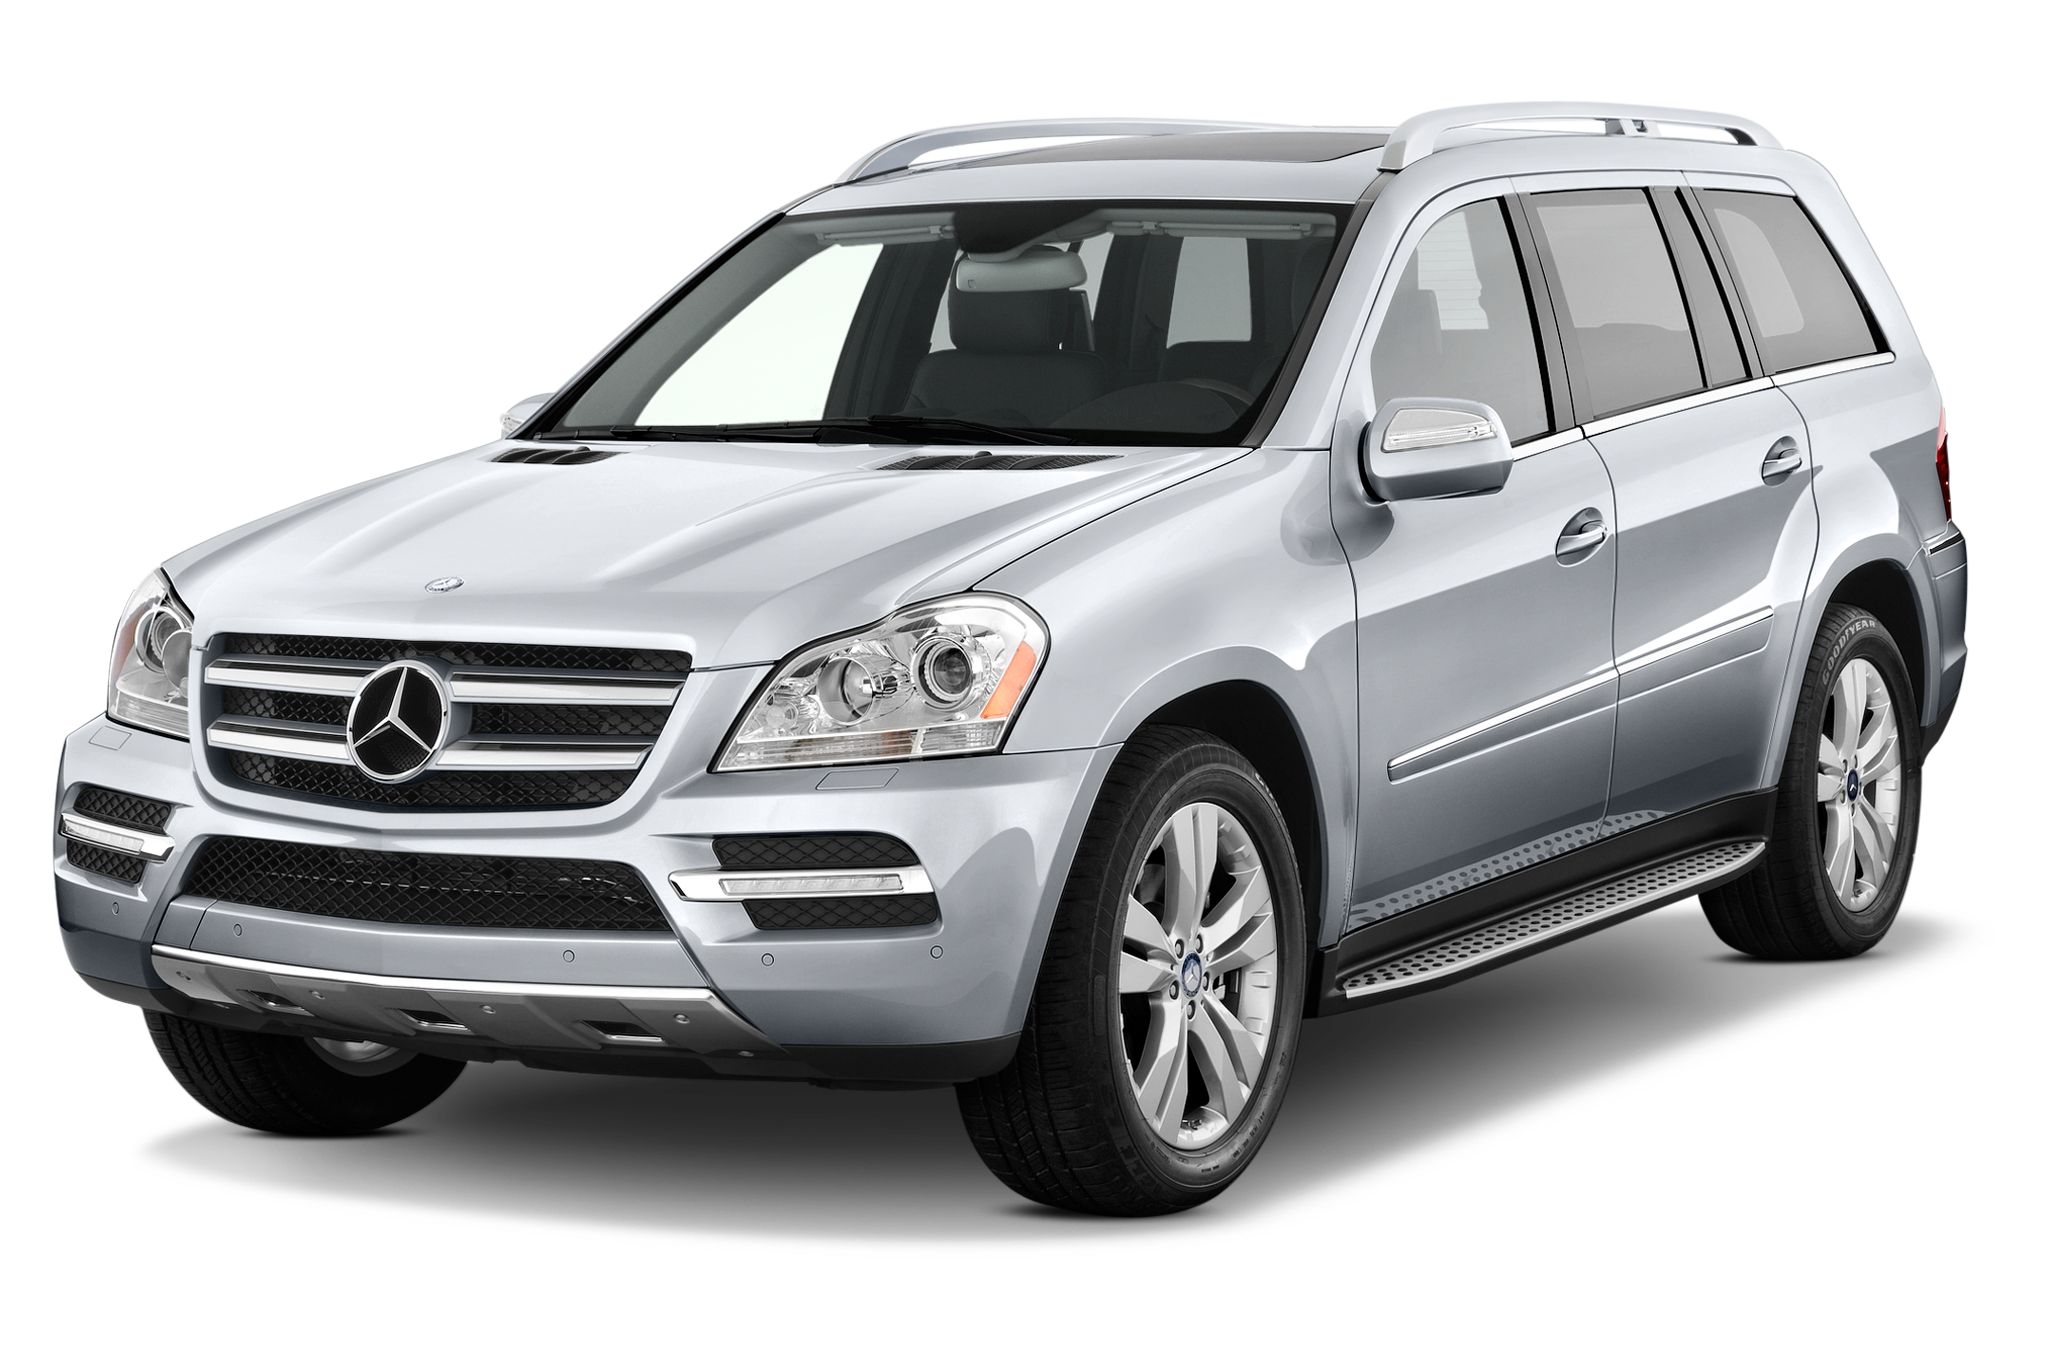 First look 2010 mercedes benz gl class 2009 new york for 2010 mercedes benz gl class